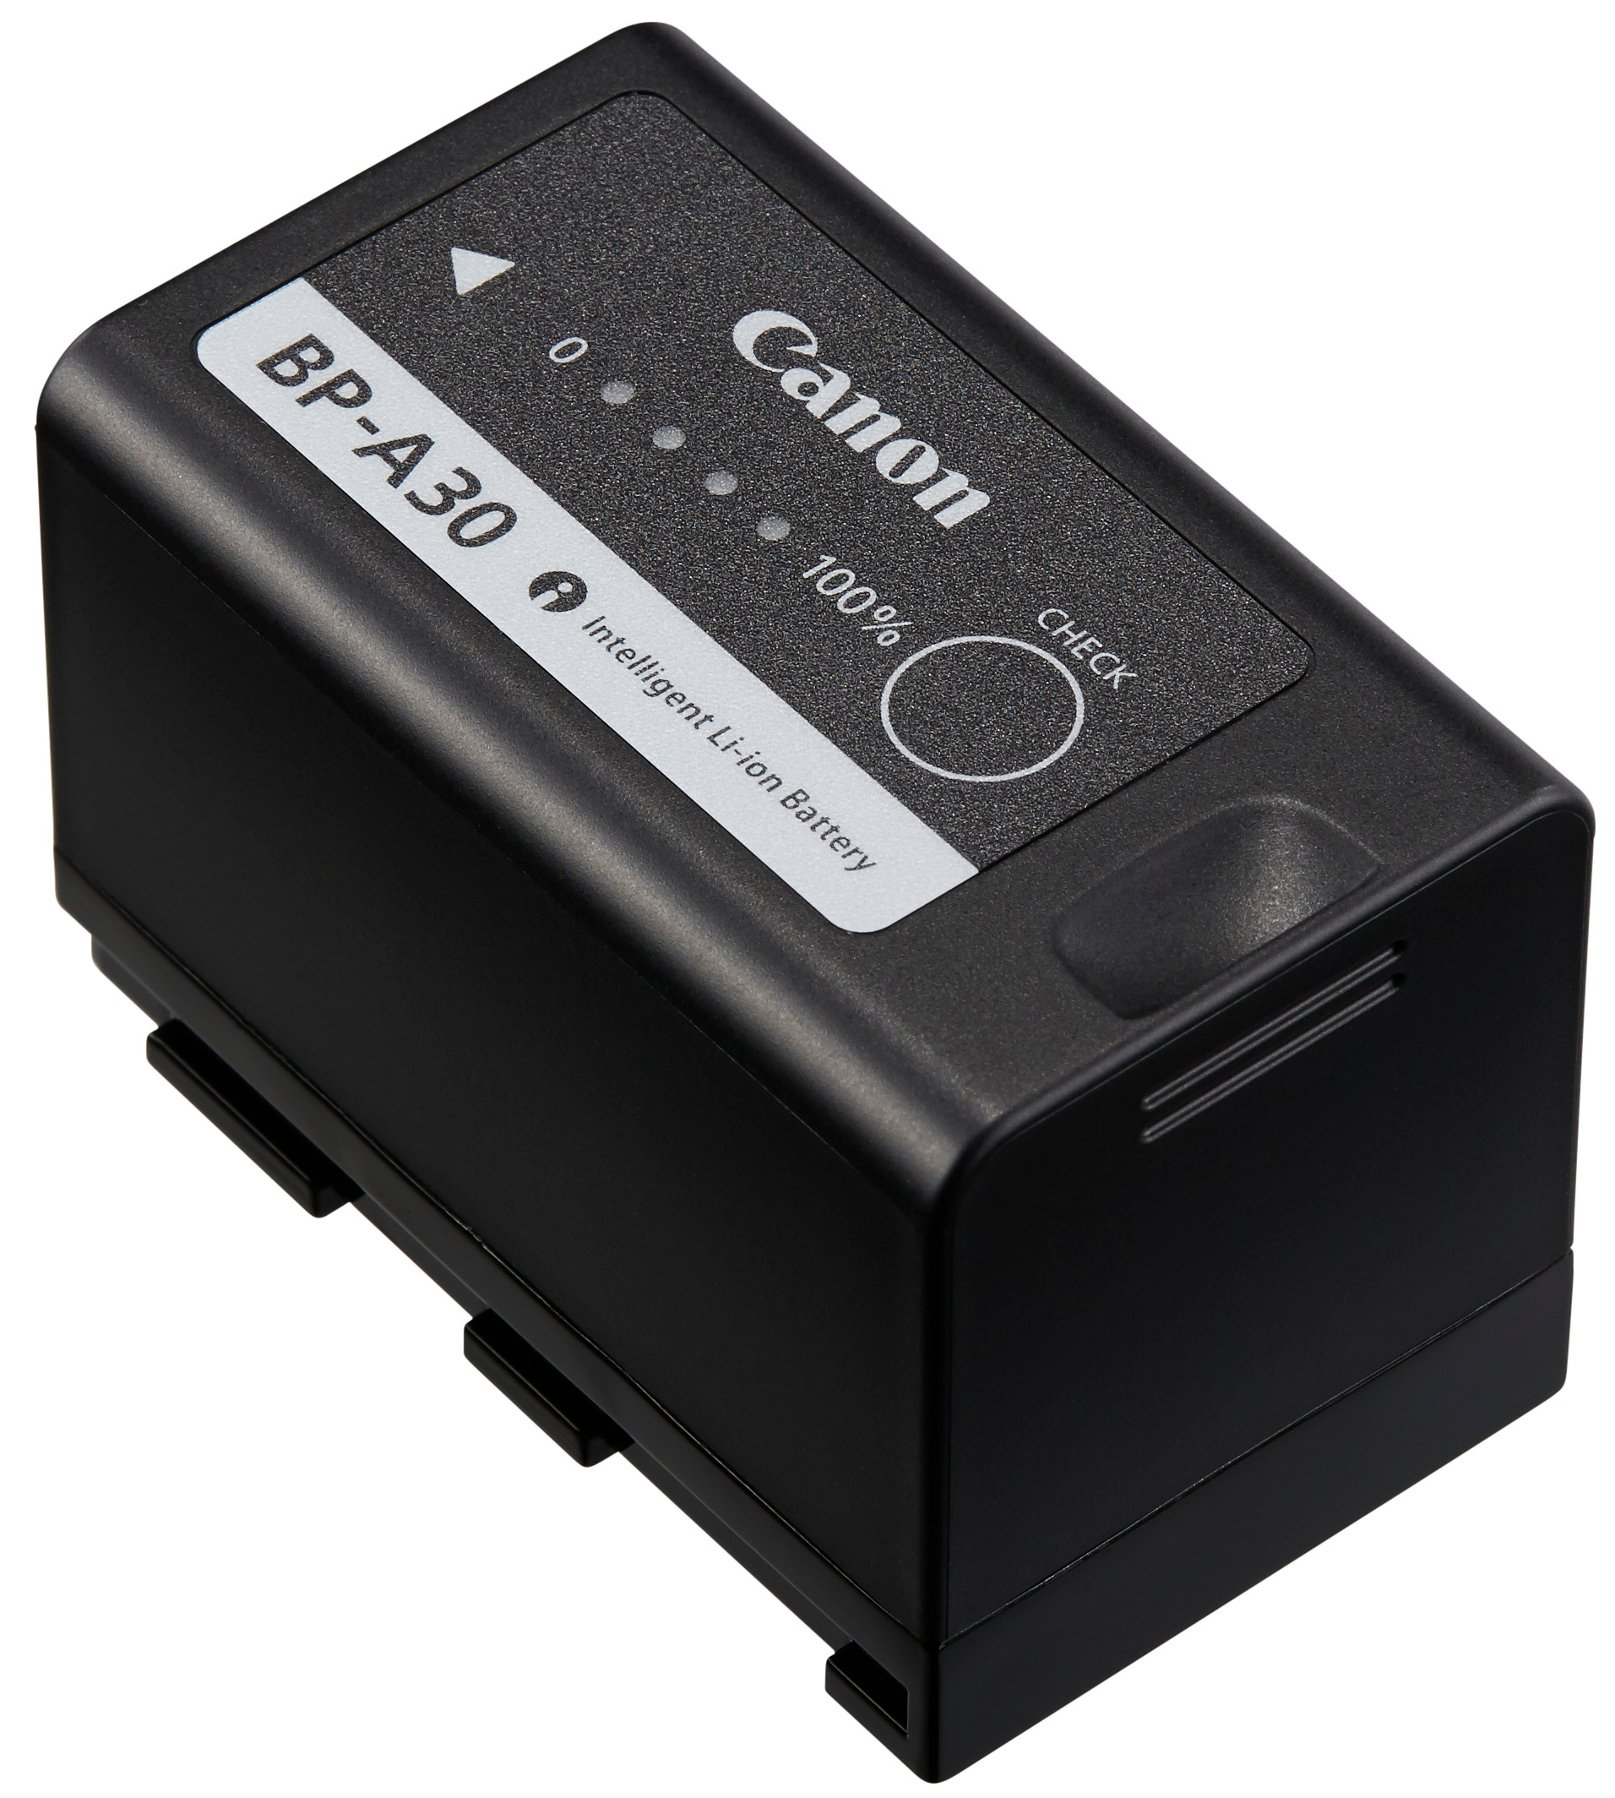 Battery Pack for EOS C300 MK II